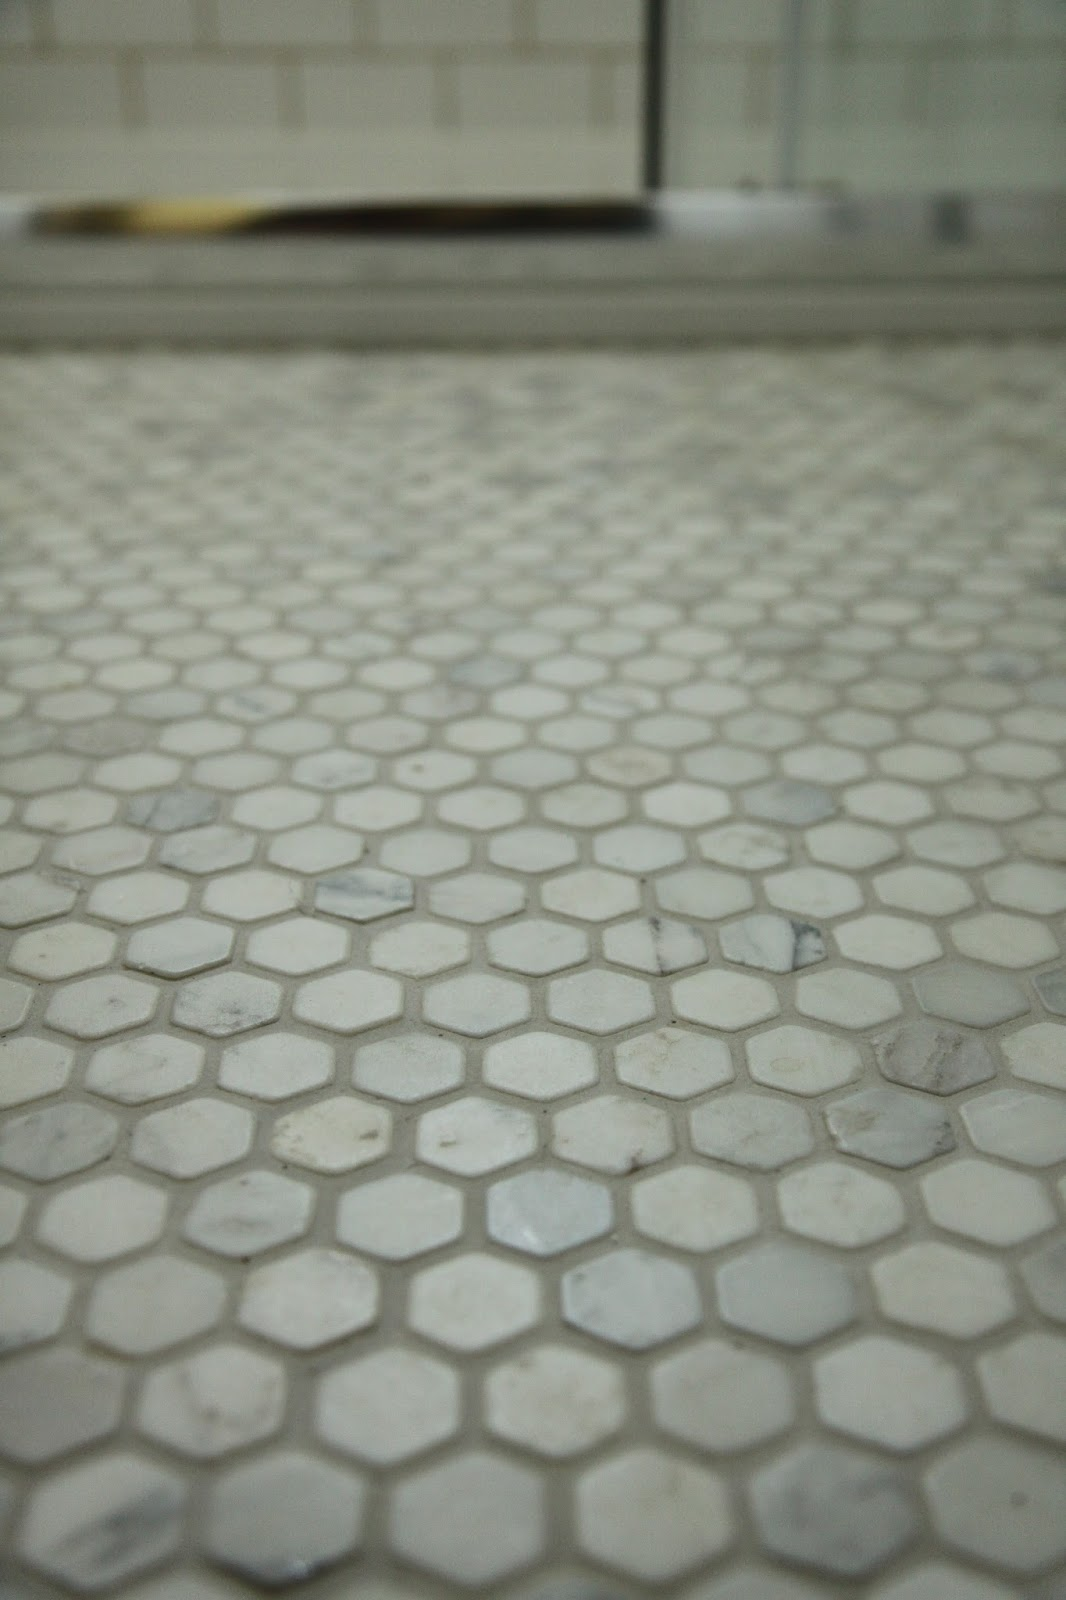 floor-design-delectable-images-of-octagon-white-marble-regrouting-tile-bathroom-flooring-design-ideas-incredible-ideas-for-home-flooring-ideas-using-regrouting-floor-tile